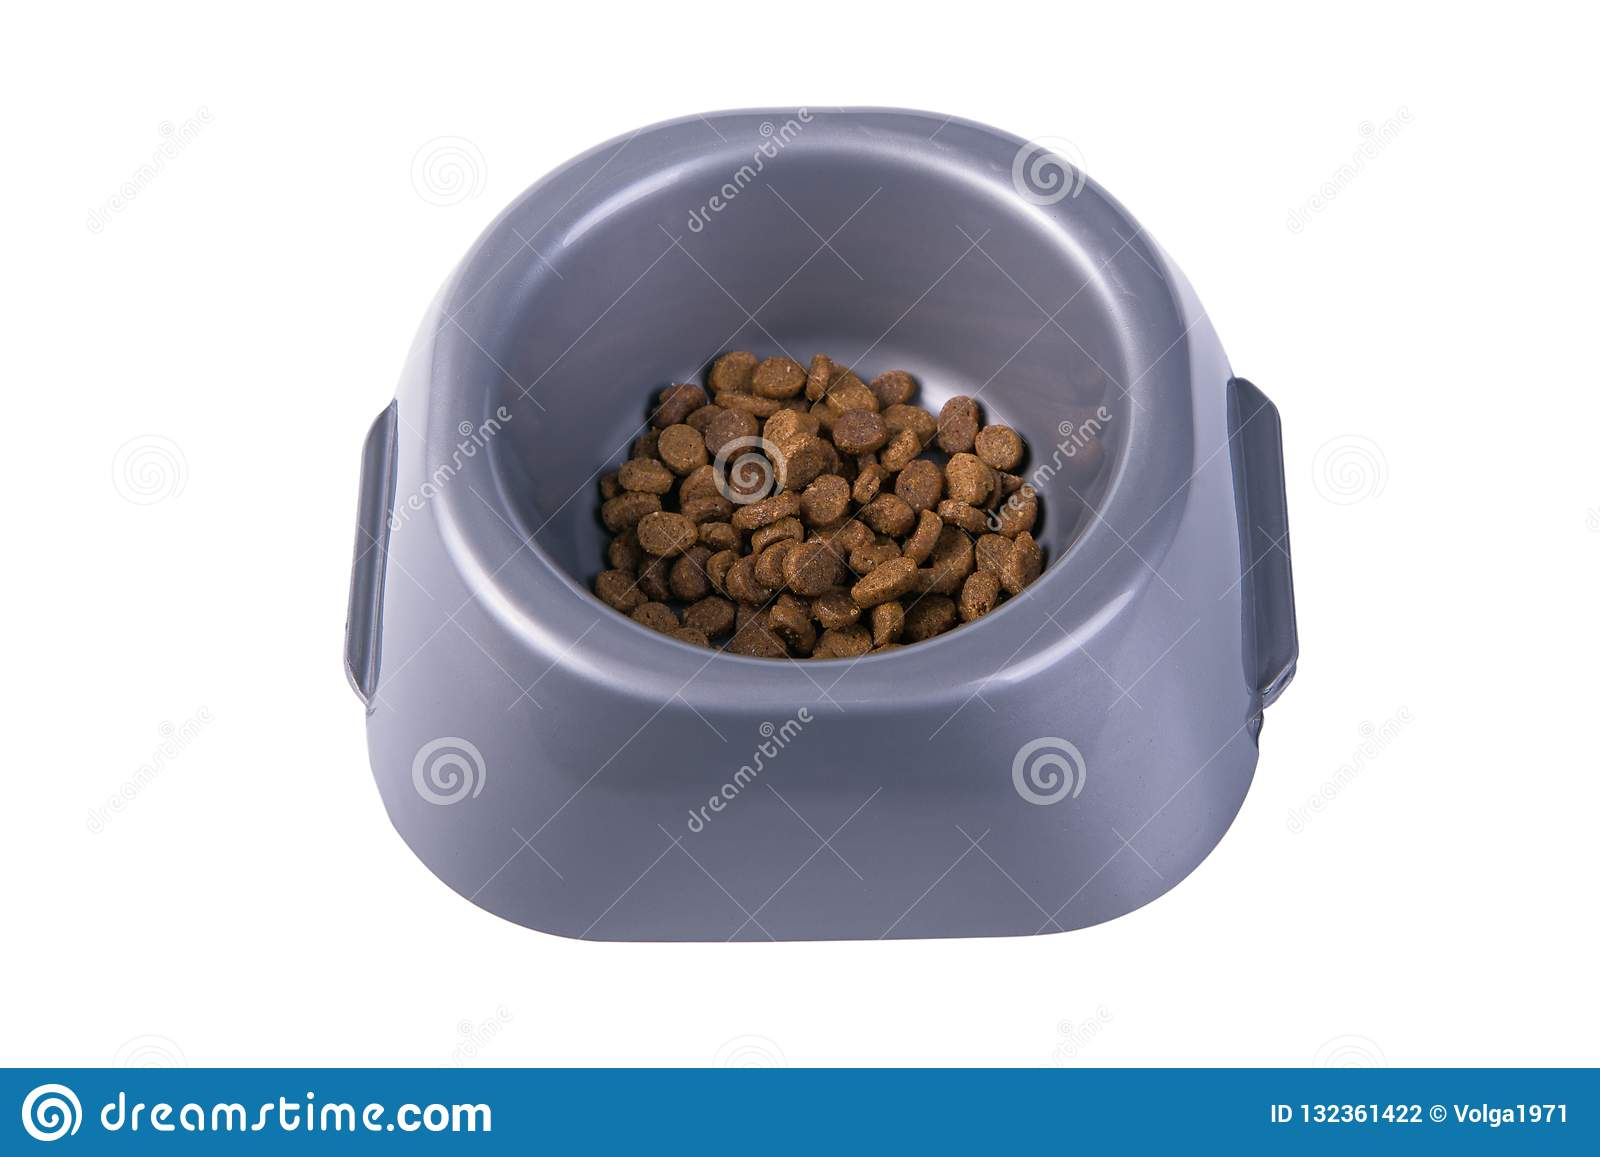 Bowl with dry cat food